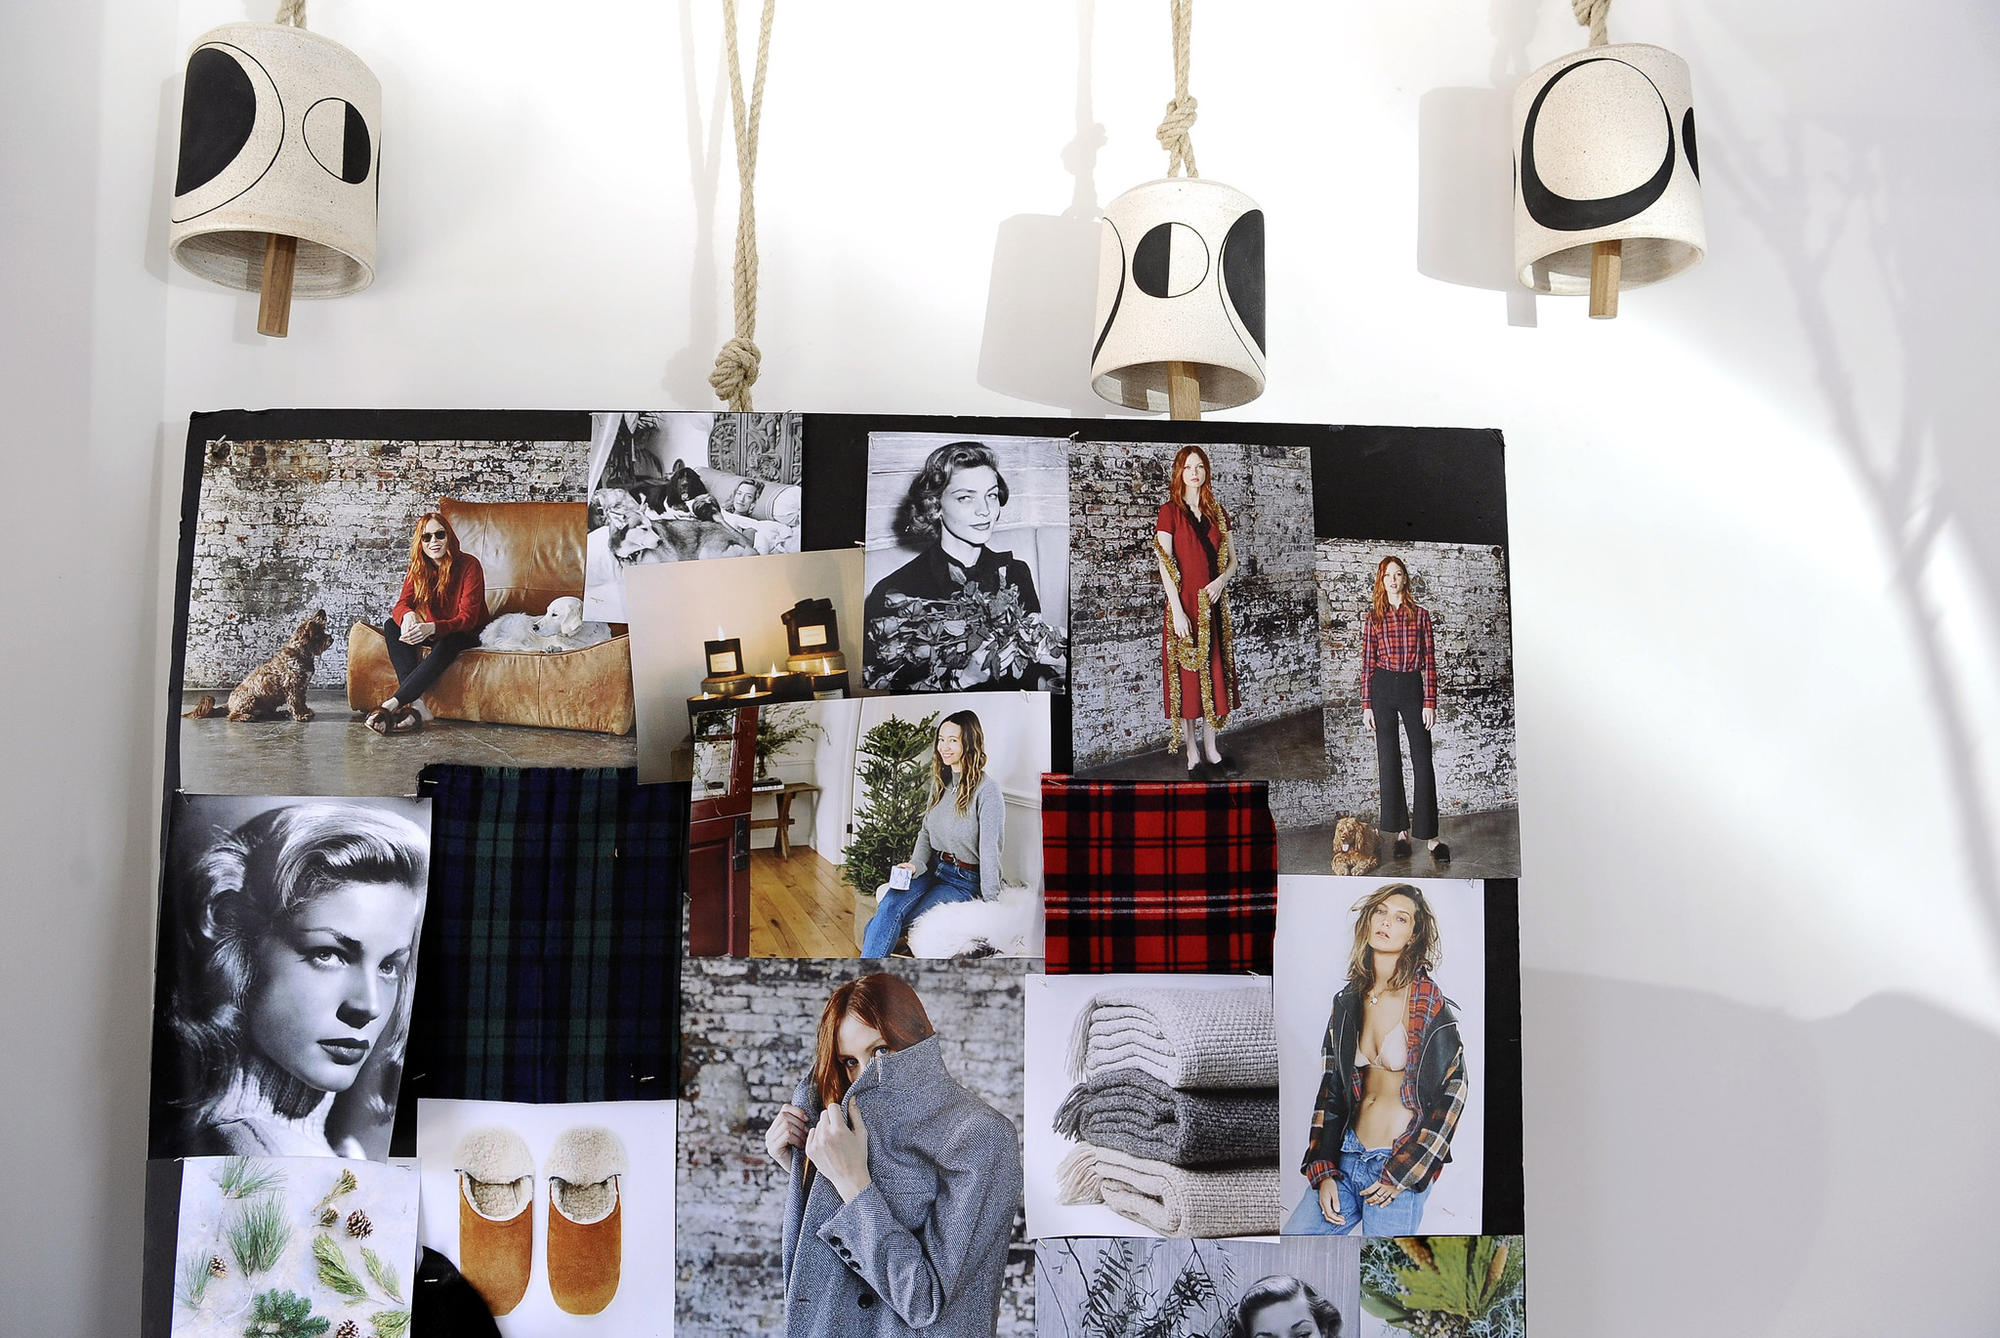 A look at a mood board created by designer Jenni Kayne.